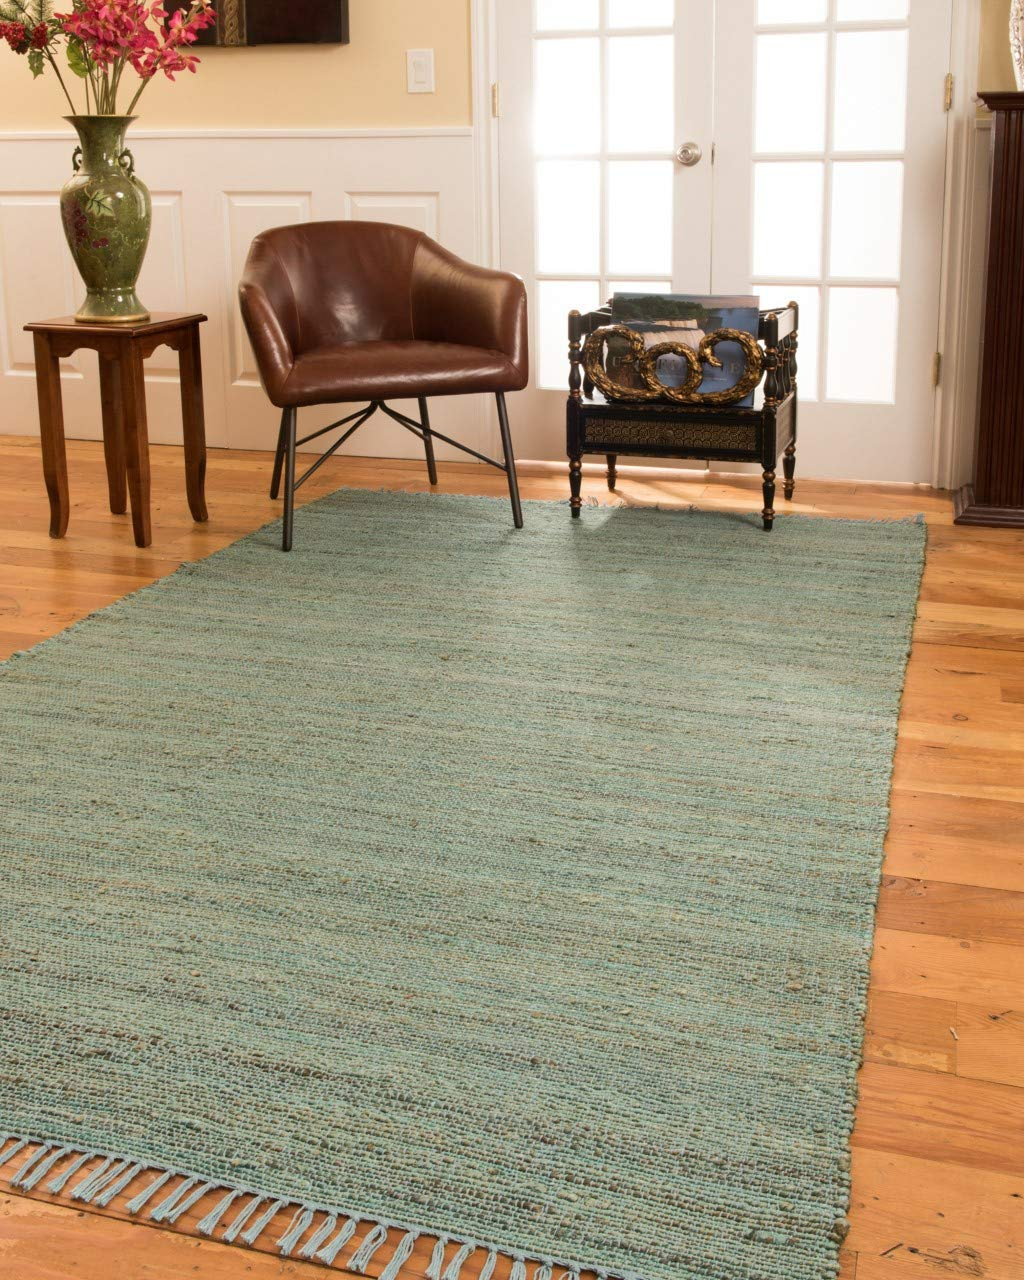 Natural Area Rugs 100 Natural Fiber Handmade Venice Jute Rectangular Rug 5 x 8 Denim